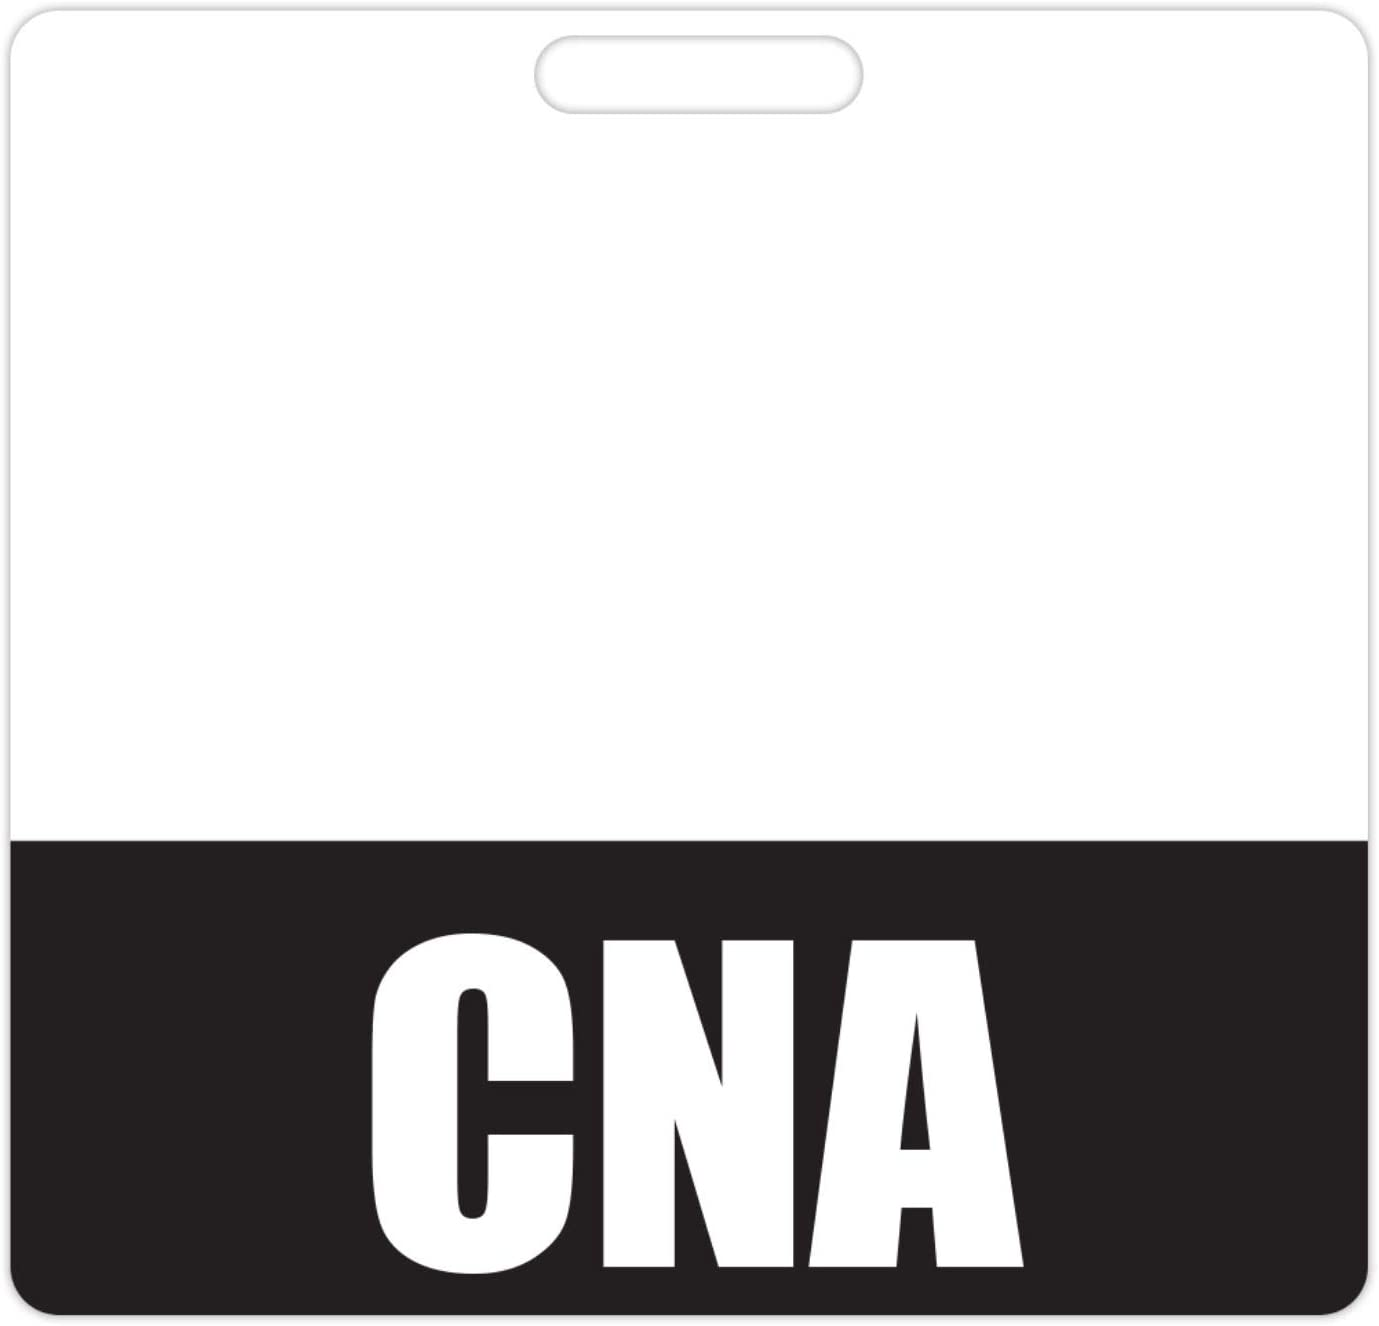 CNA Badge Buddy (Black) - Horizontal Heavy Duty Badge Tags for Certified Nursing Assistants - Double Sided Badge Identification Card